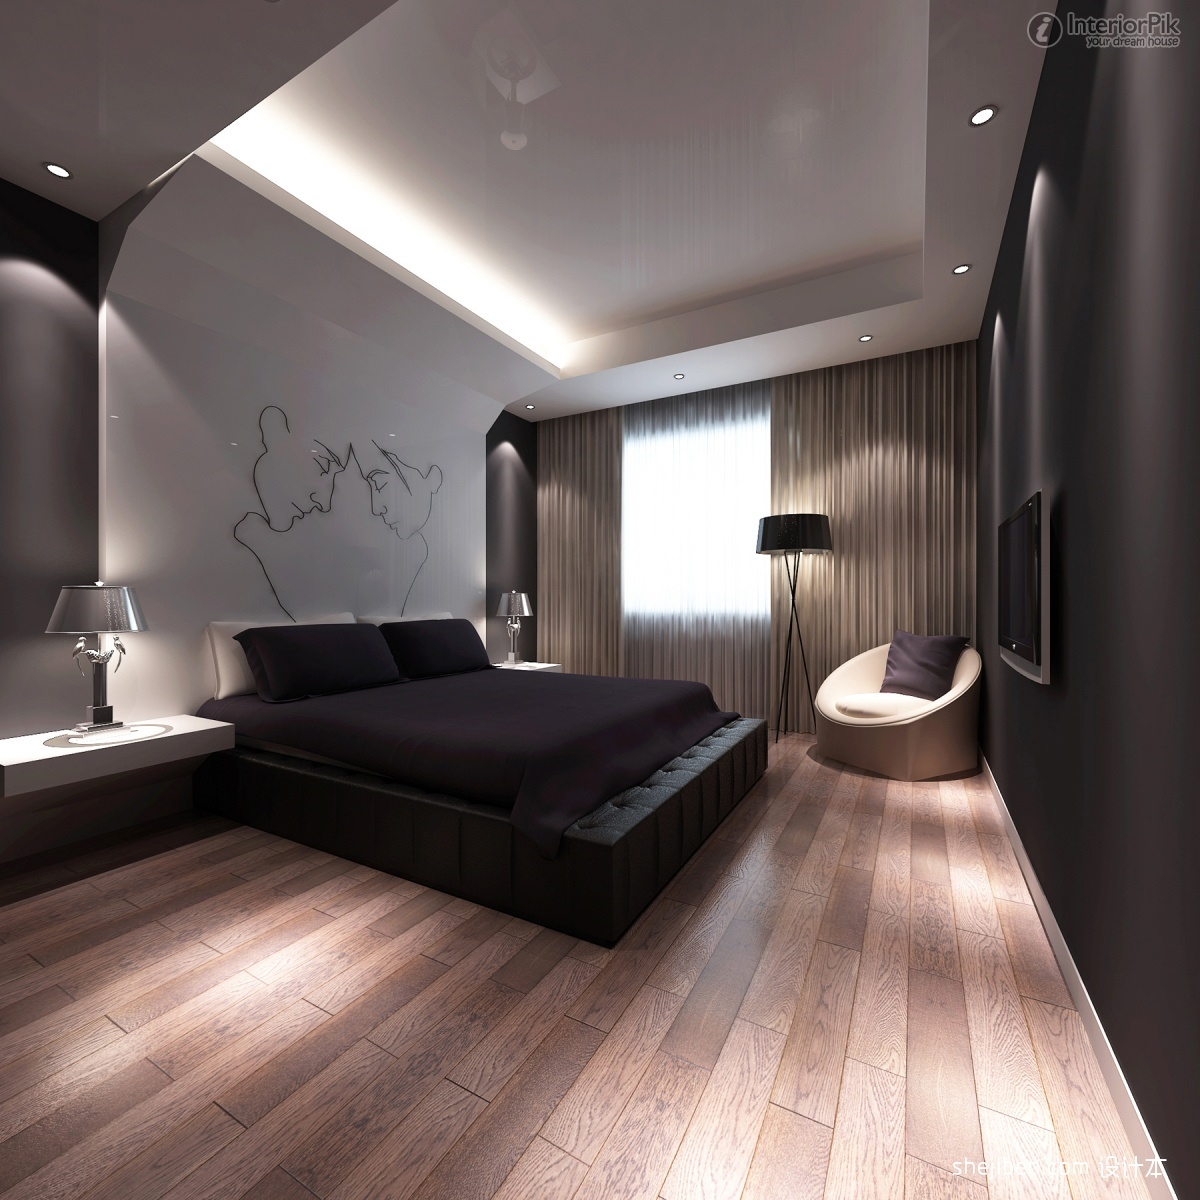 bedroom-design-2013-superb-modern-bedroom-designs-ideas-2013-interior-decorating-furniture-with-reccessed-light-also-engineering-wood-flooring-and-standing-lamp-feat-contemporary-rounded-chair